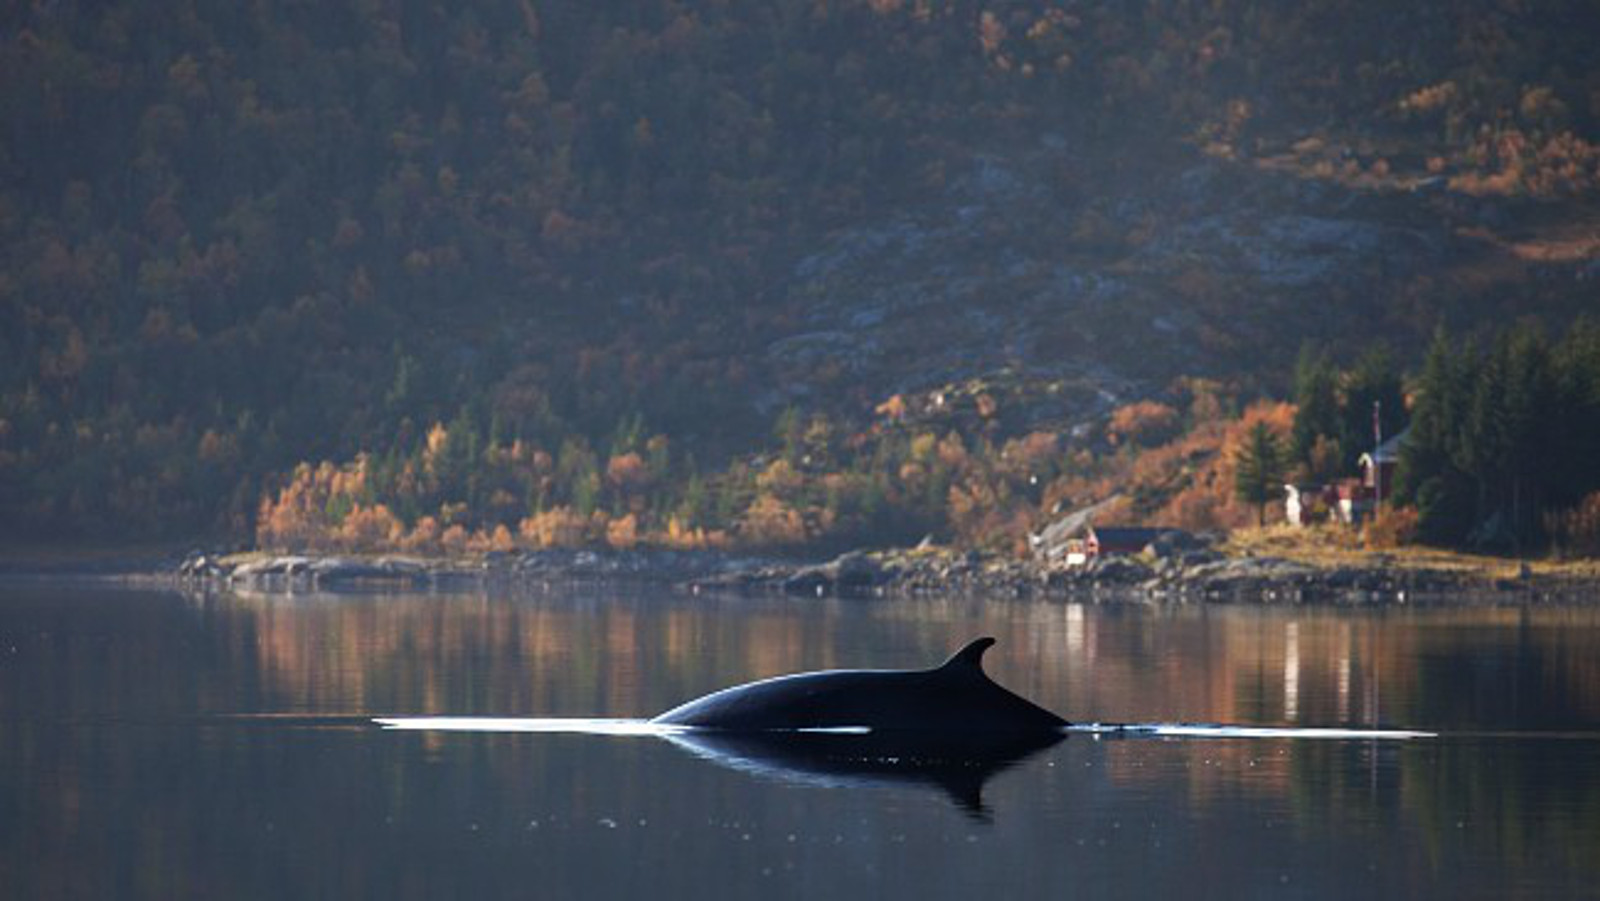 Heiko the Minke Whale, A Flippery Ambassador for Whaling in Norway